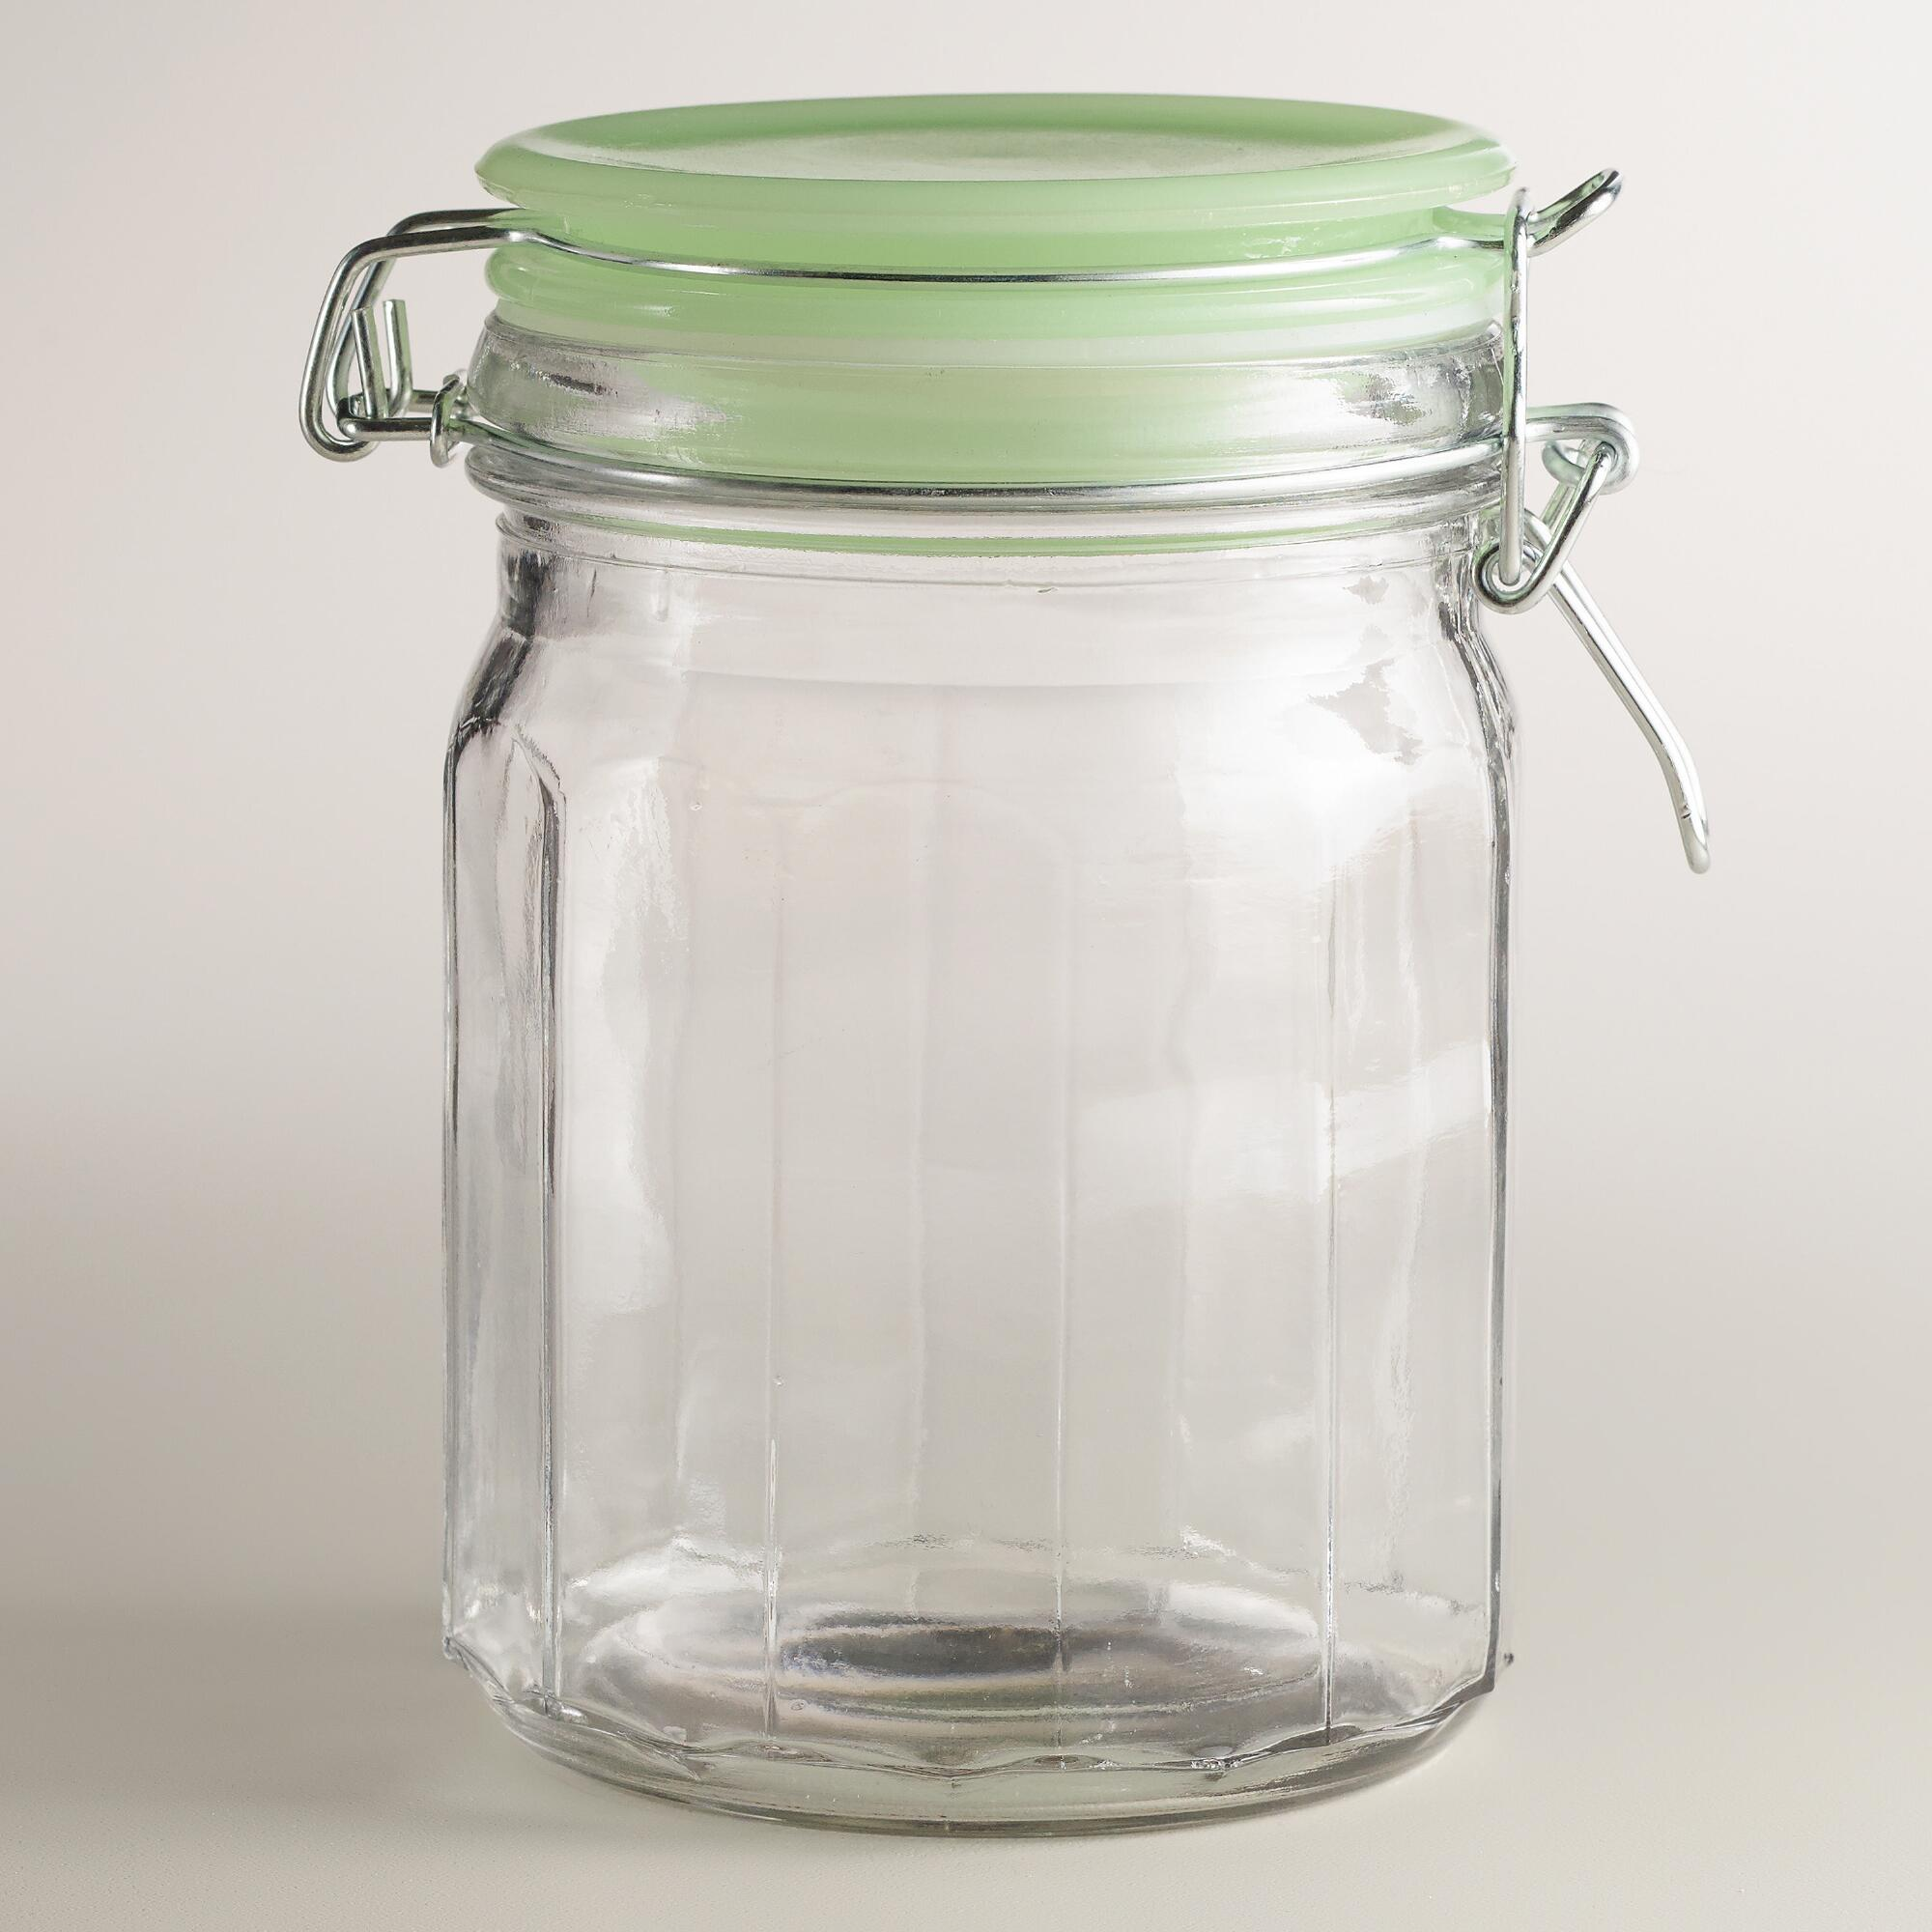 Shop glass jars, containers, mason jars, glass bottles with lids for canning, candle making. All supplies available, variety, low prices, wholesale pricing available.